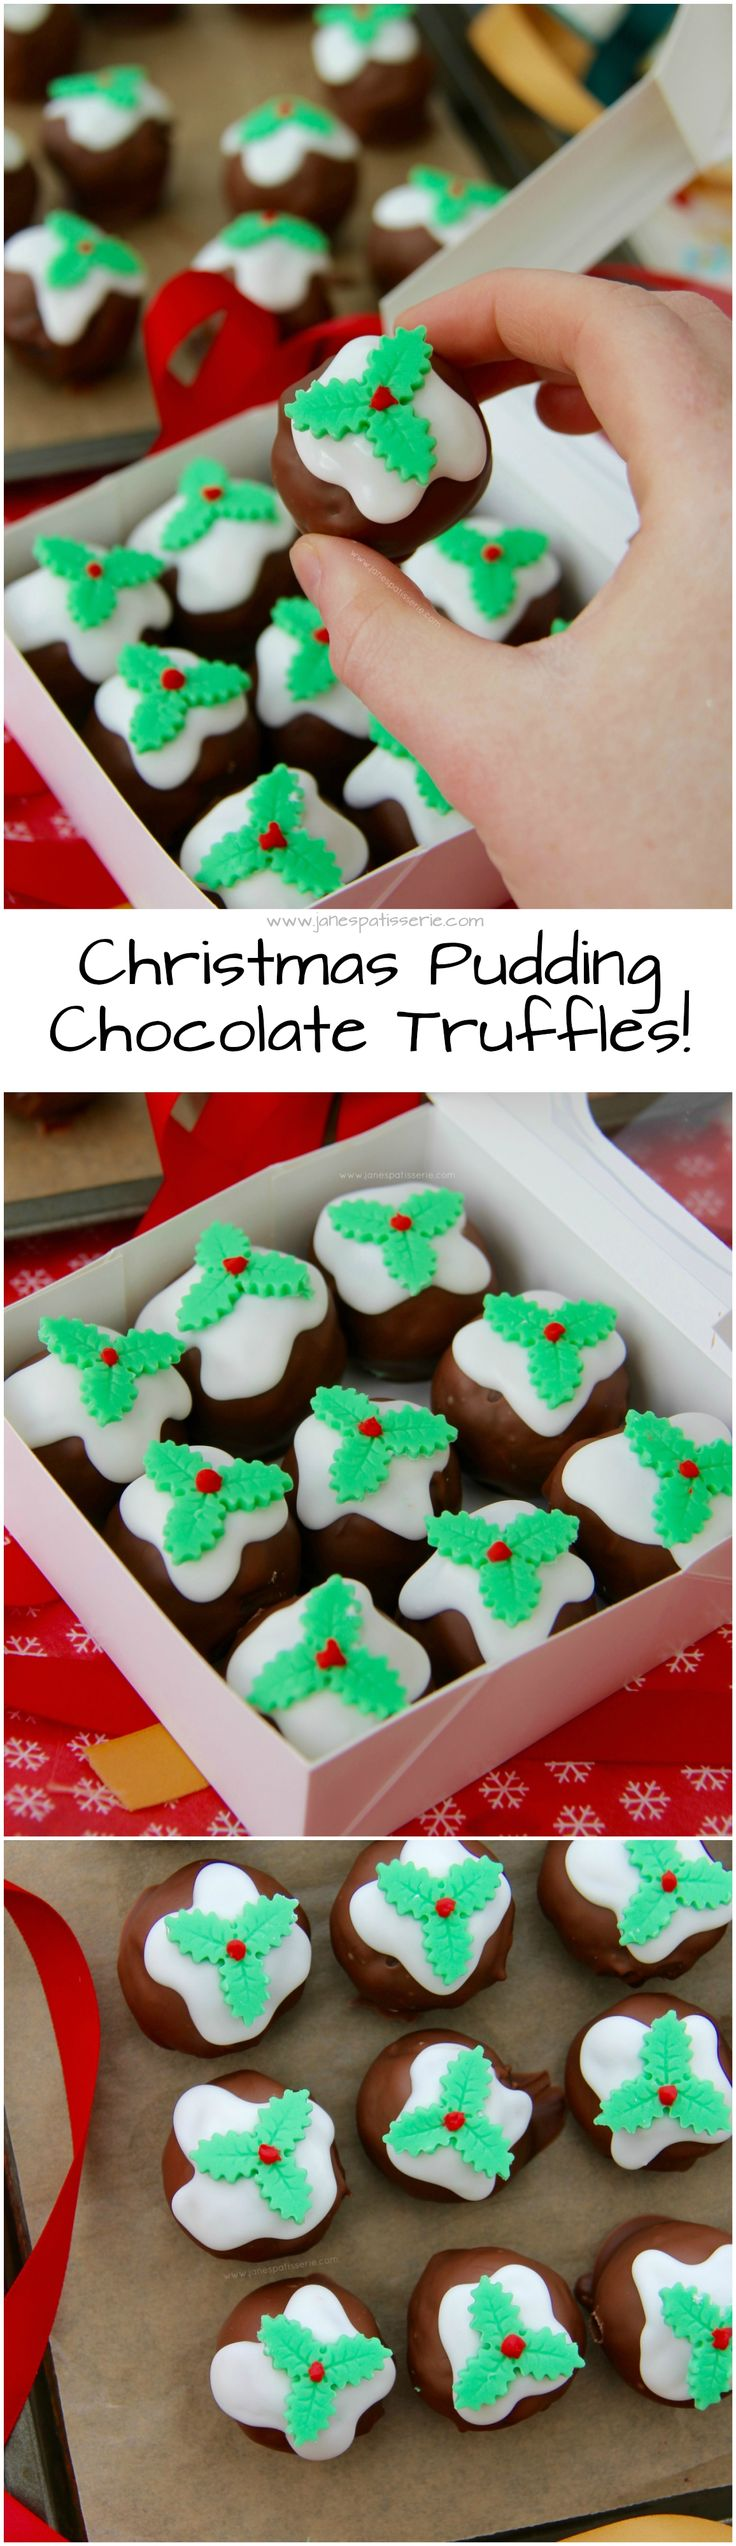 1000 ideas about cute christmas gifts on pinterest Cute homemade christmas gifts